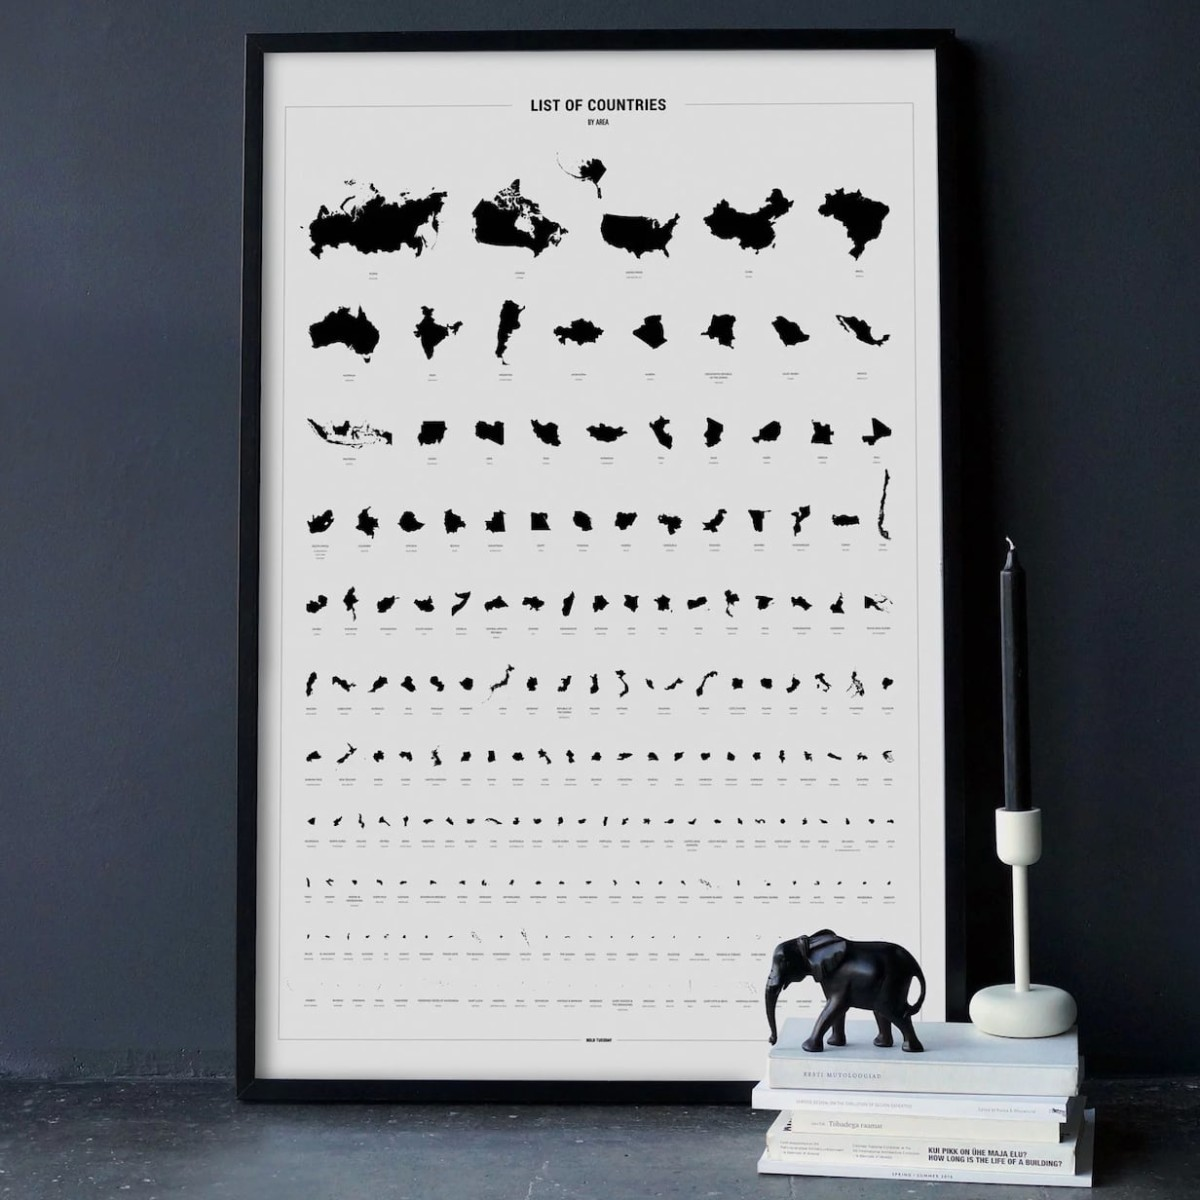 Bold Tuesday List of Countries World Map Print organizes 196 nations by their area